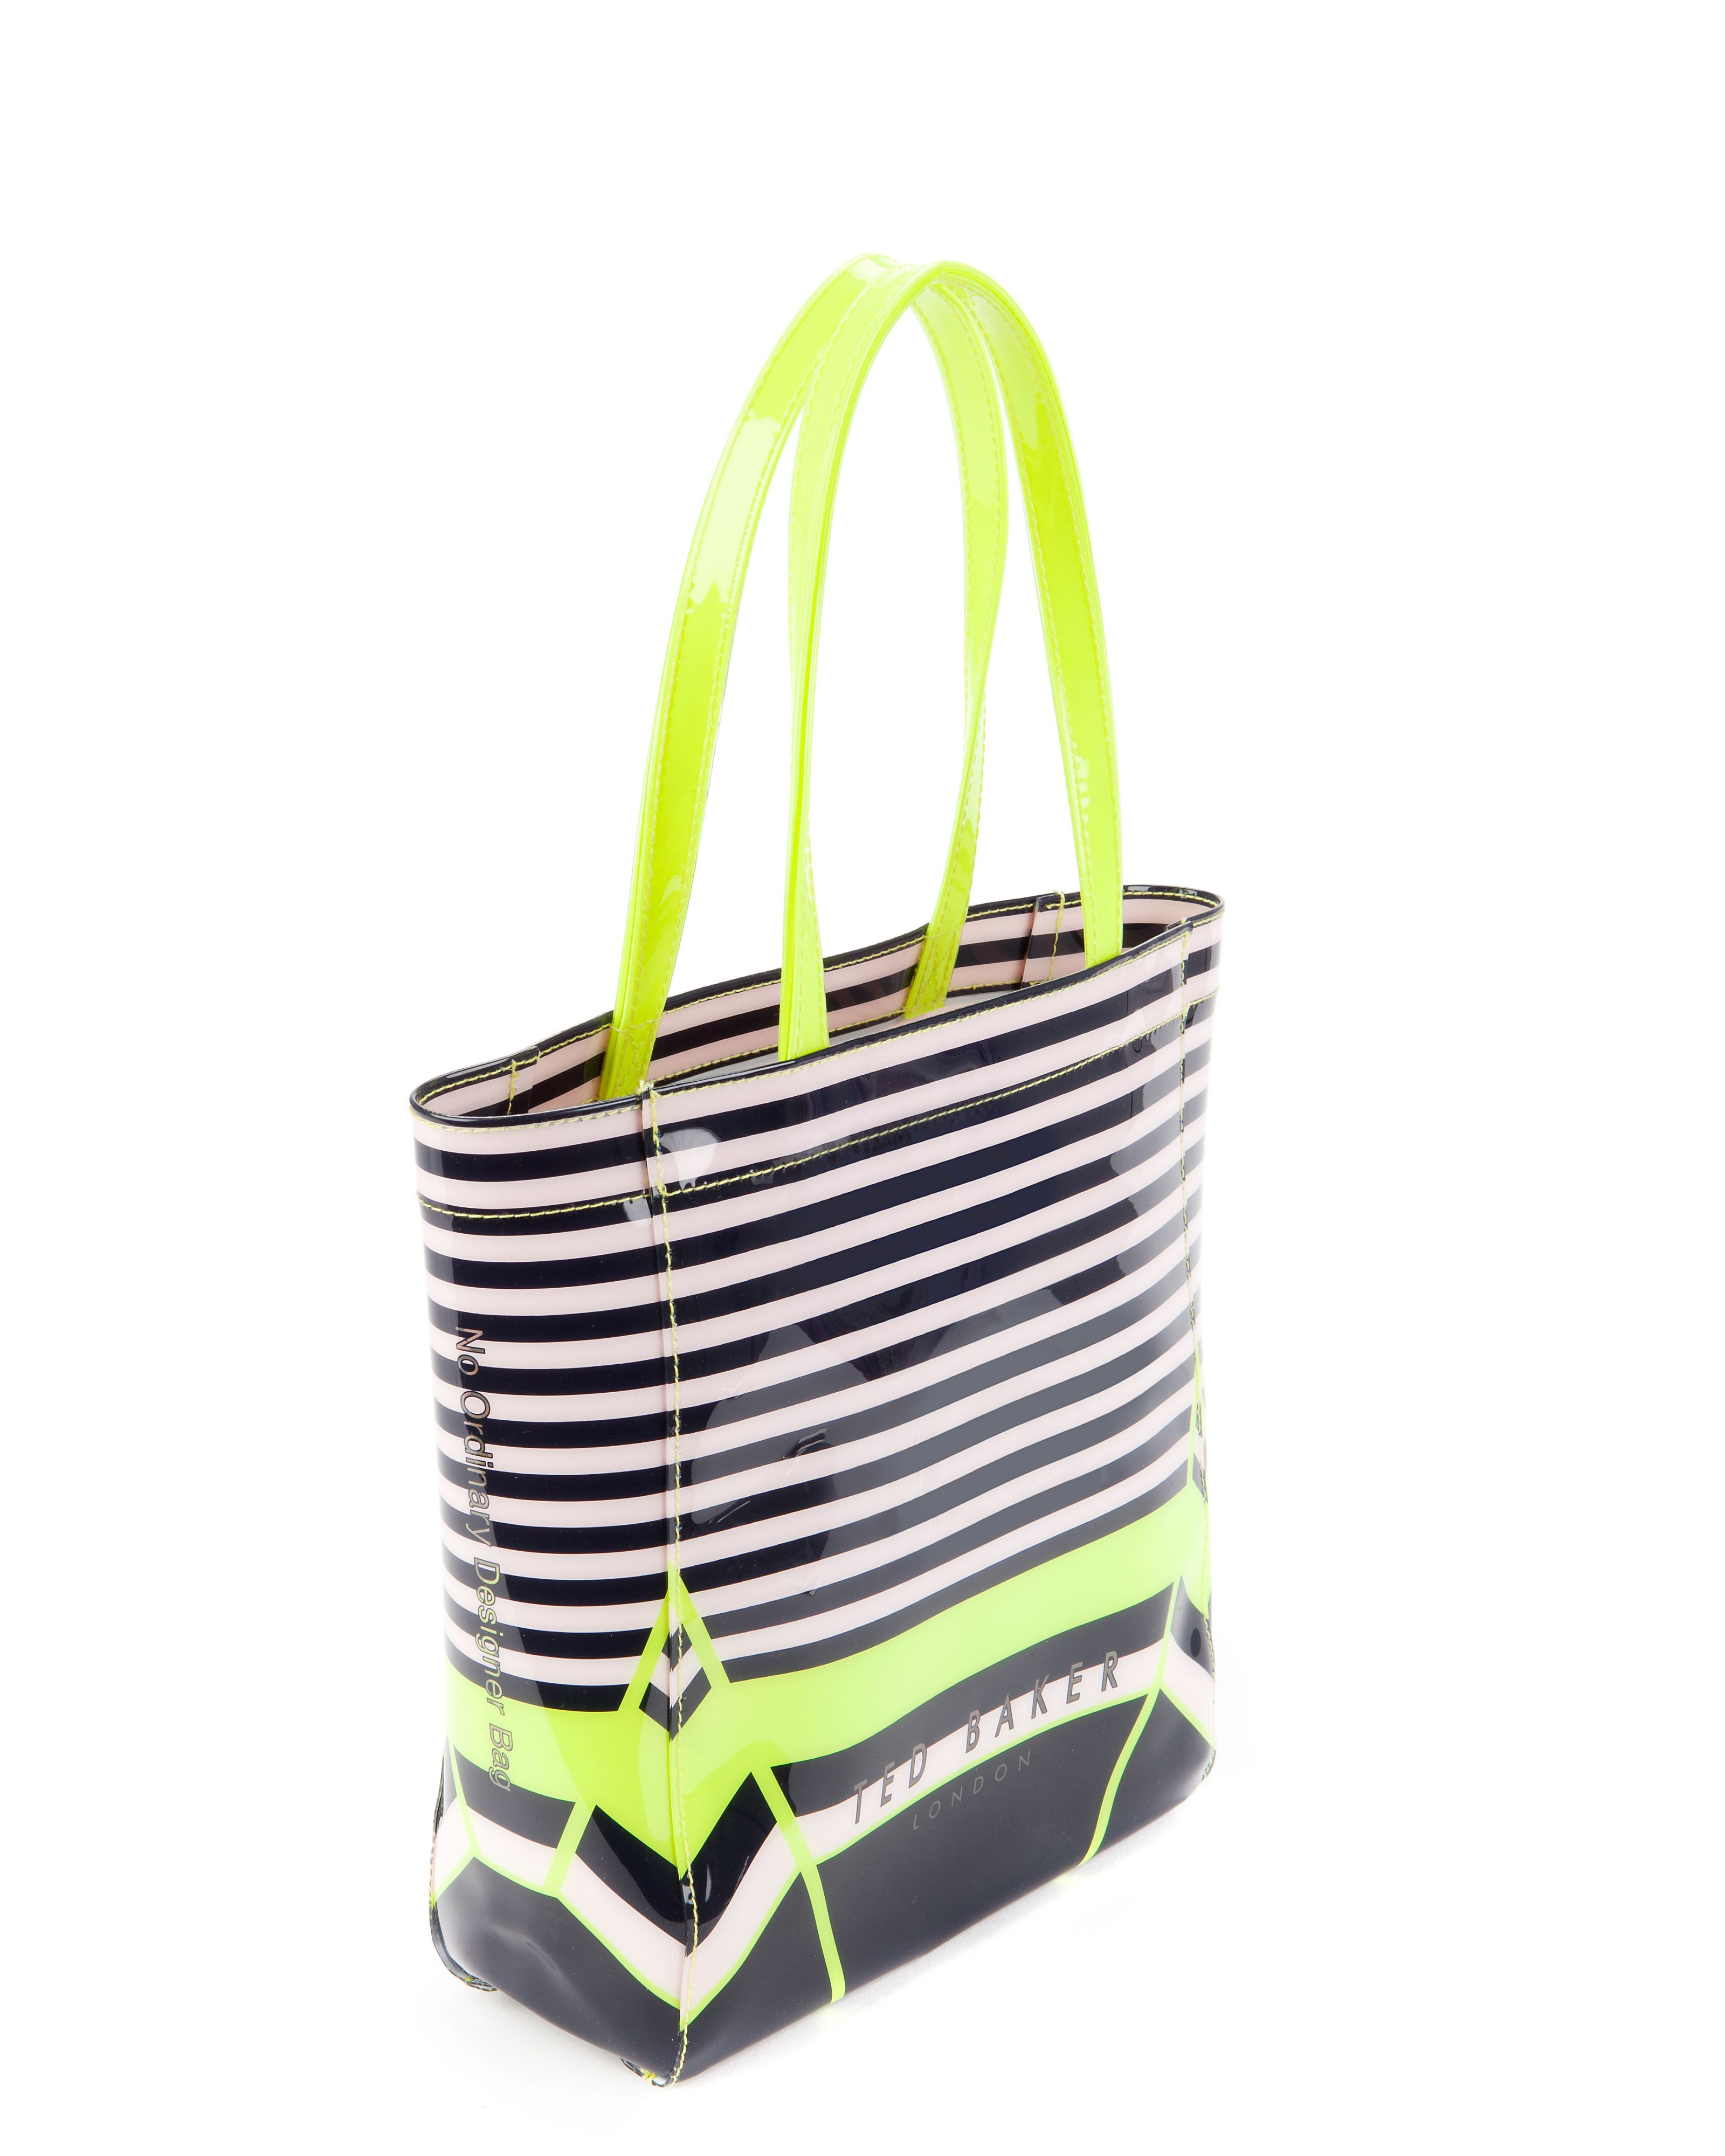 Stricon small candy stripe shopper